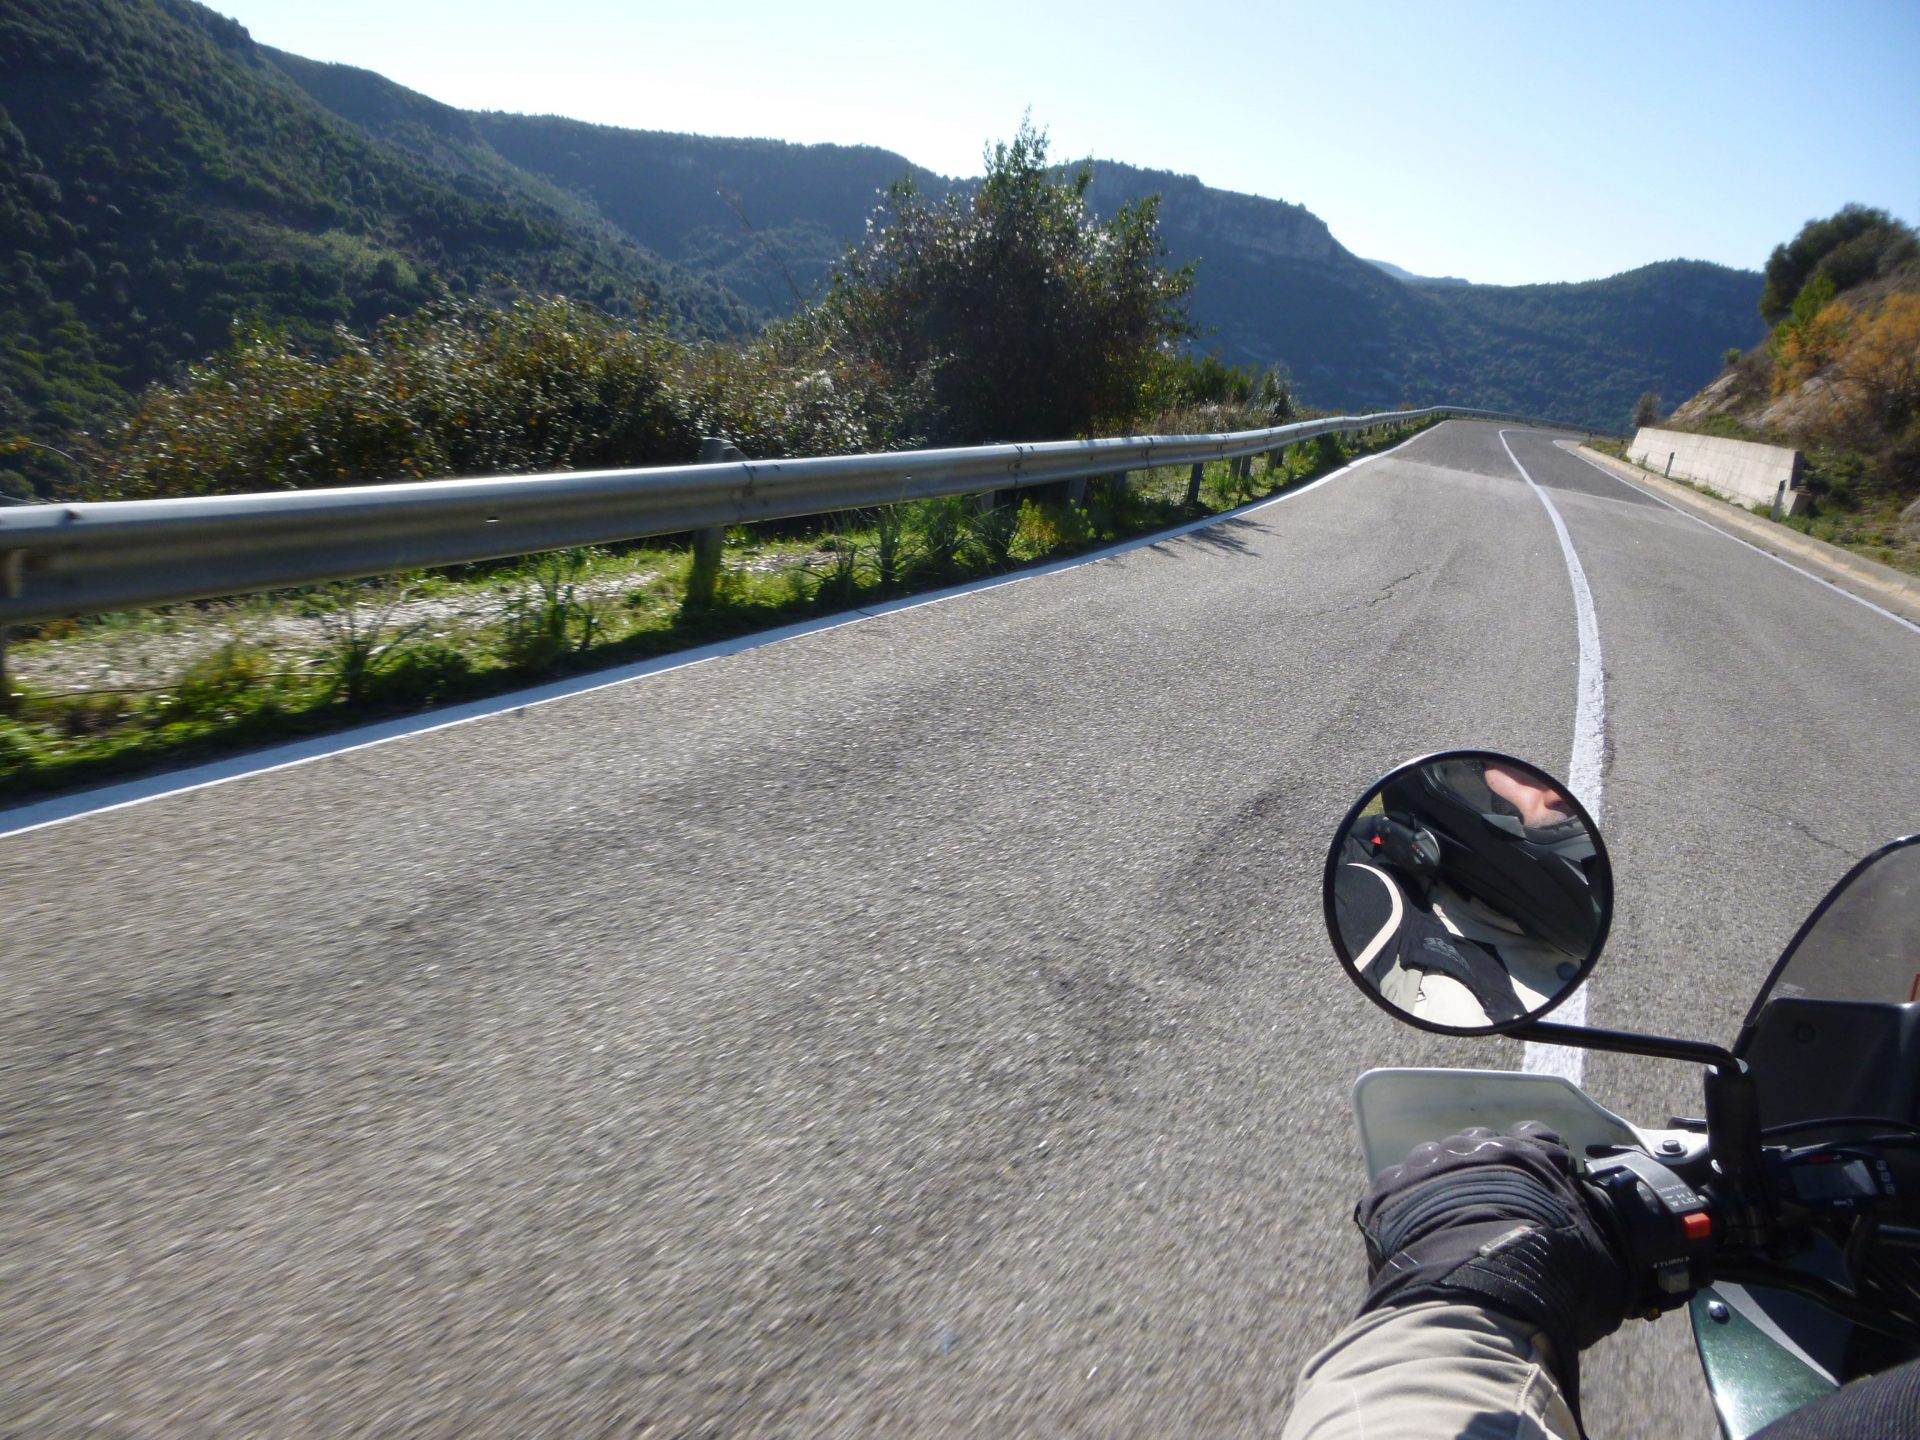 Sardinia, on motorcycle